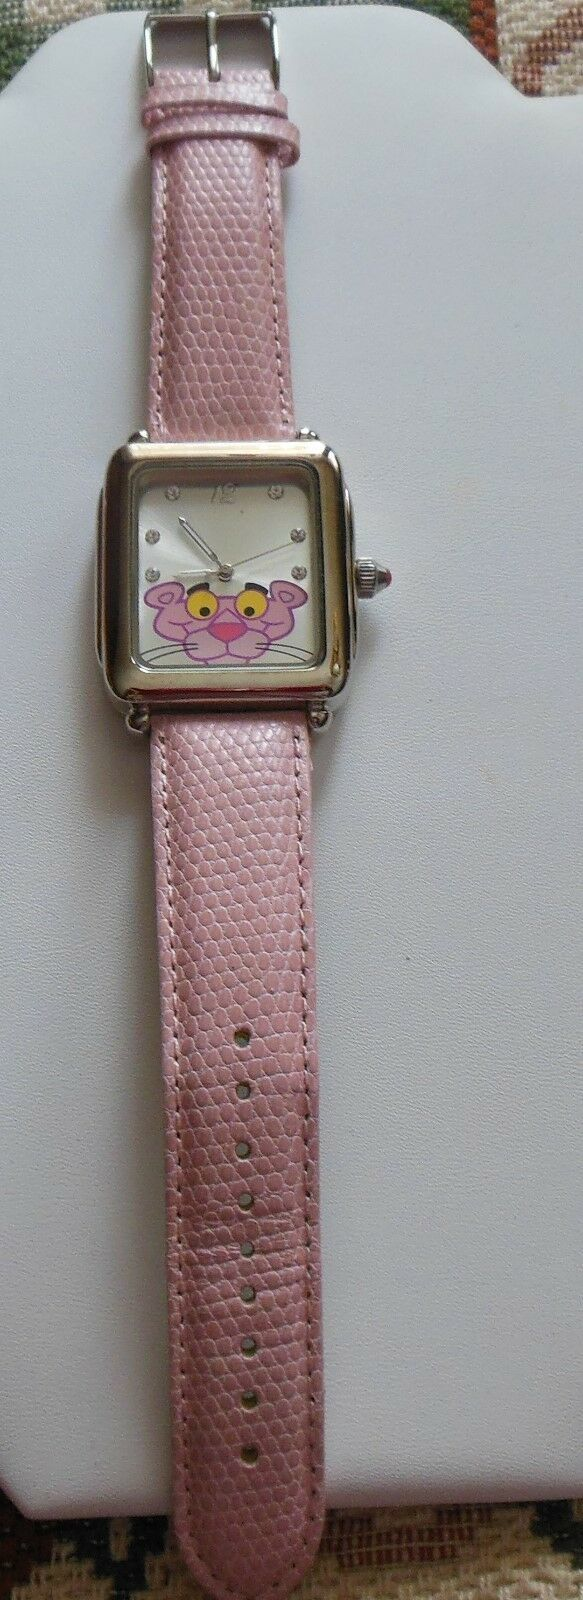 Primary image for Vintage Pink Panther Watch W/ Leather Band